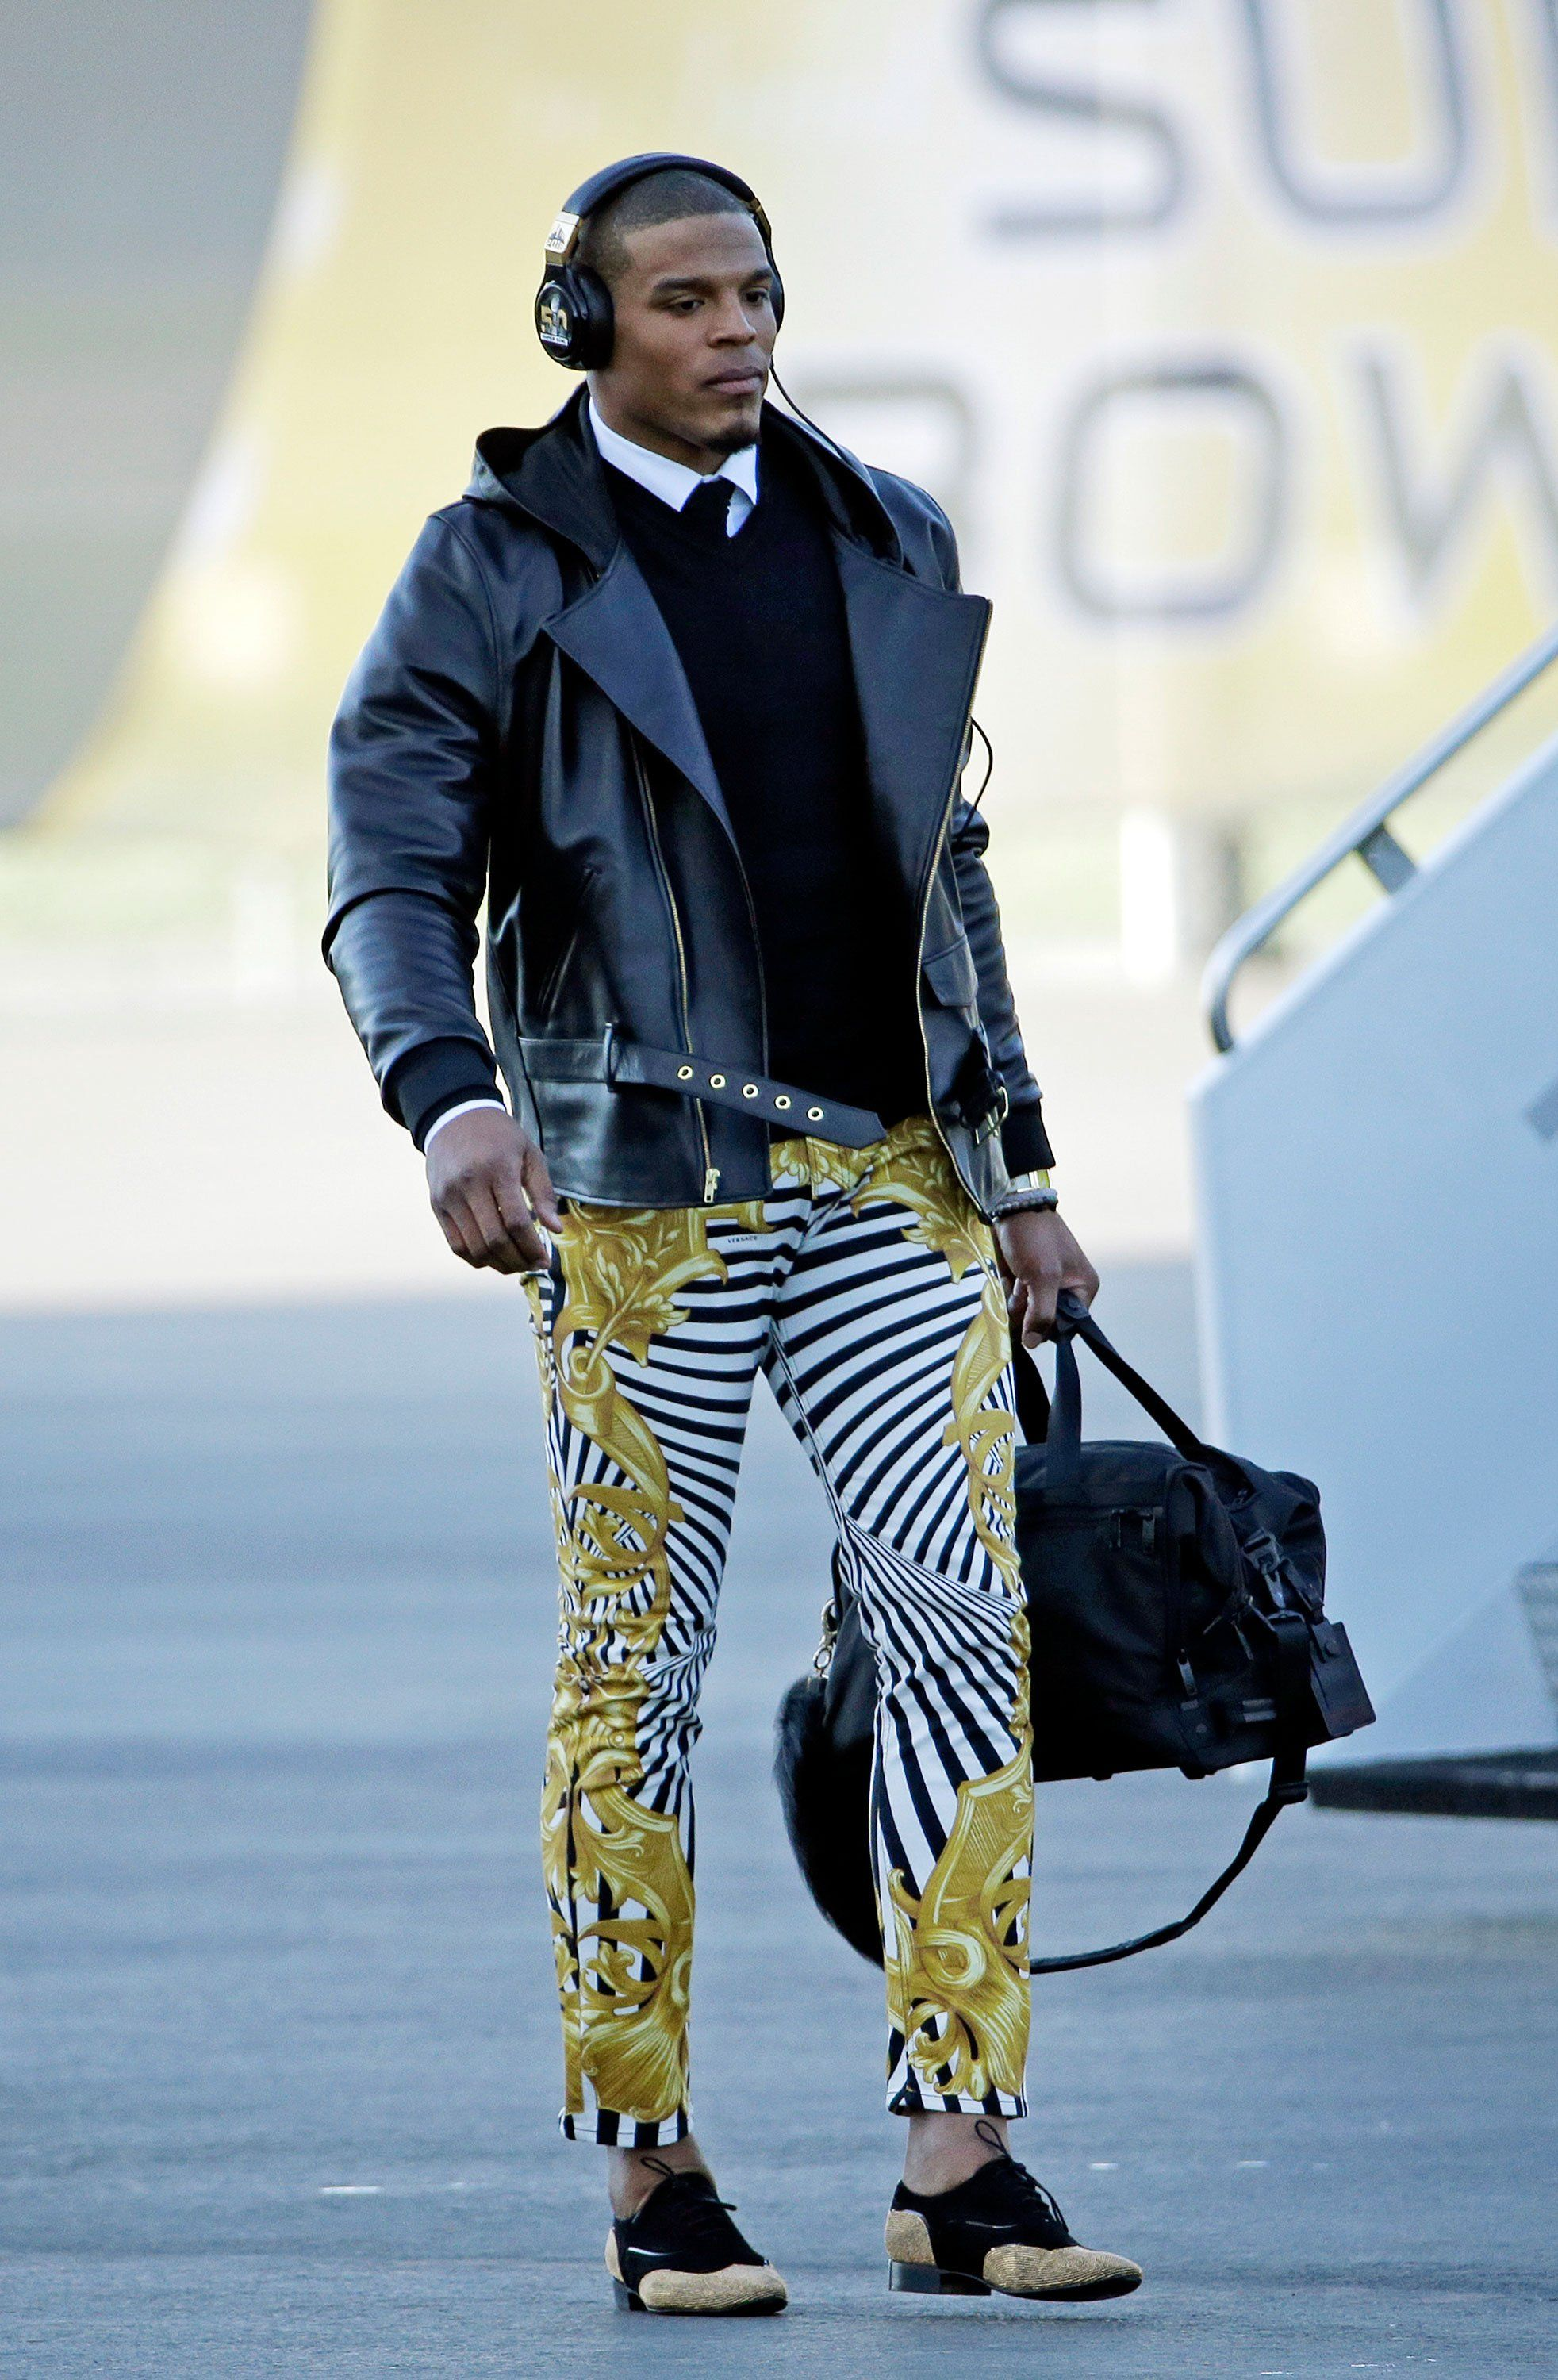 cam newton u2019s in a whole other league with his cool pants